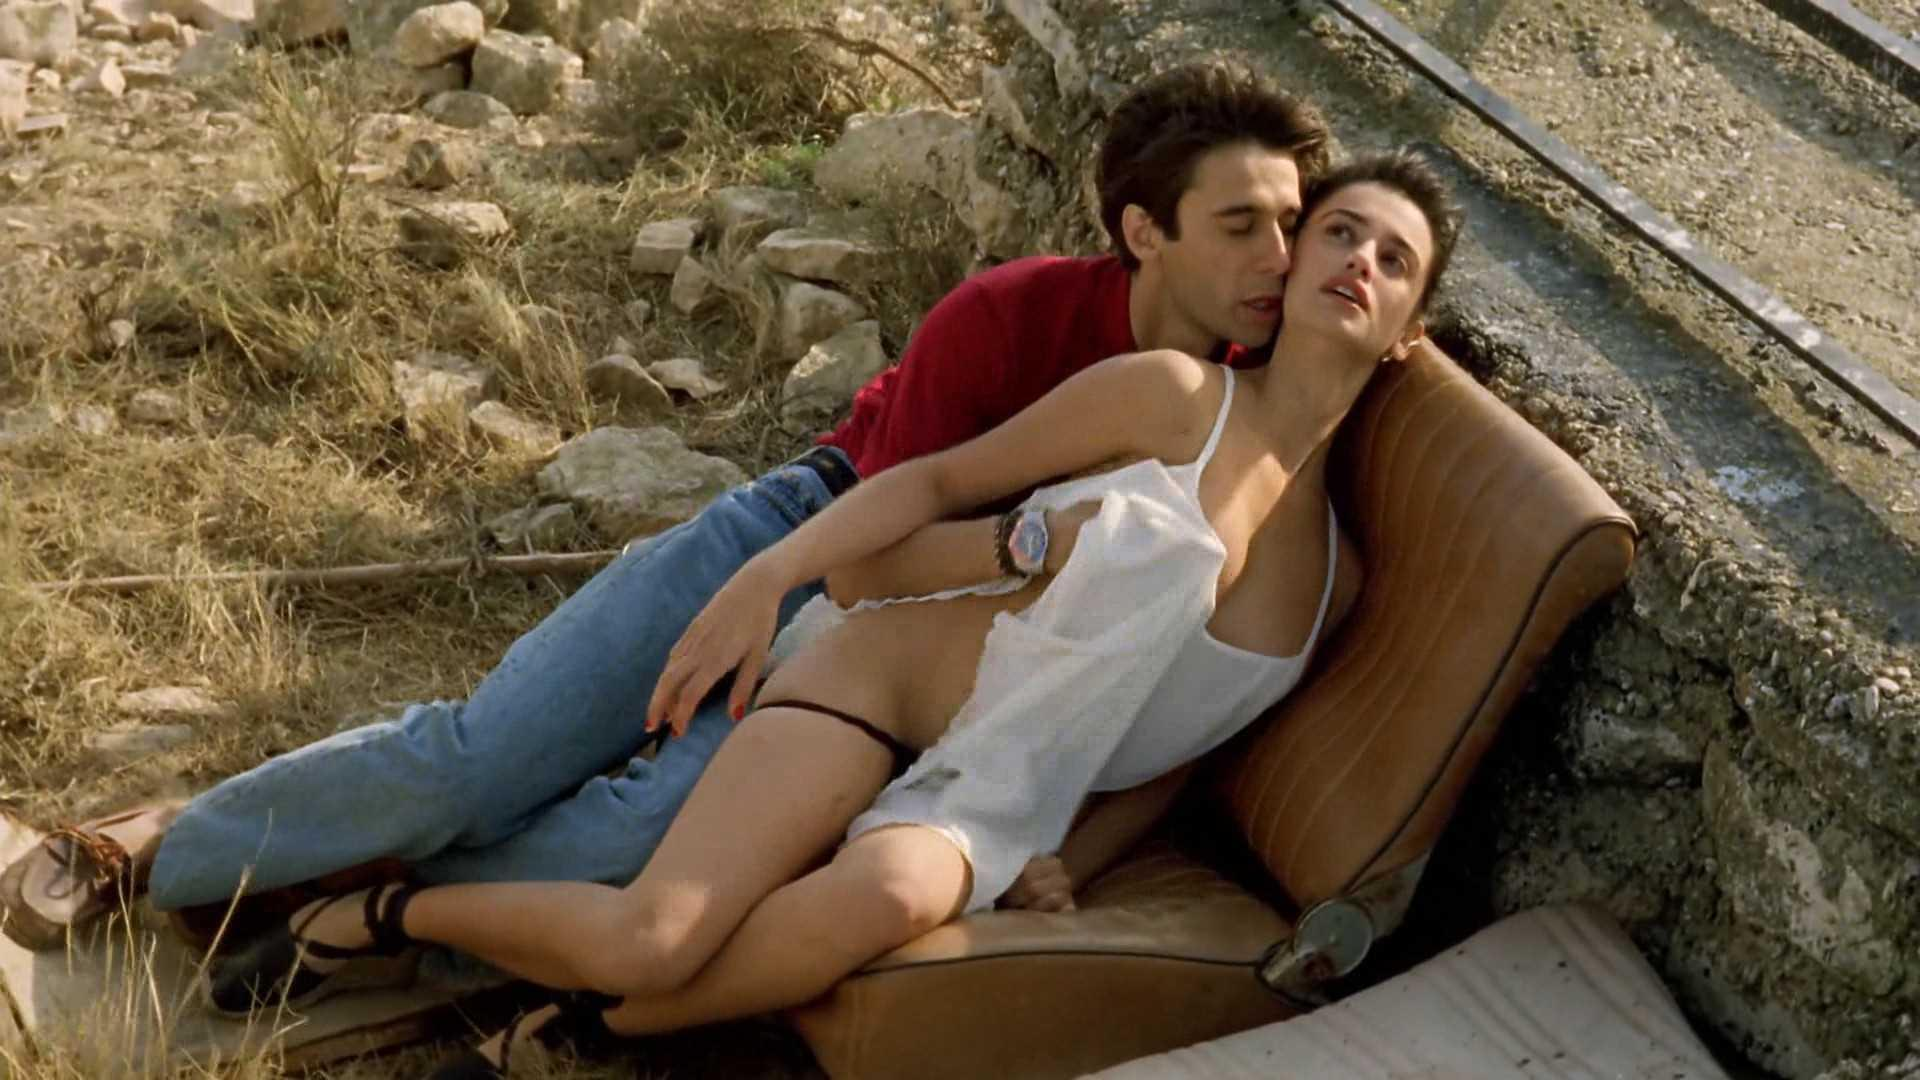 Here are all the hottest picture sex scenes ever image daily